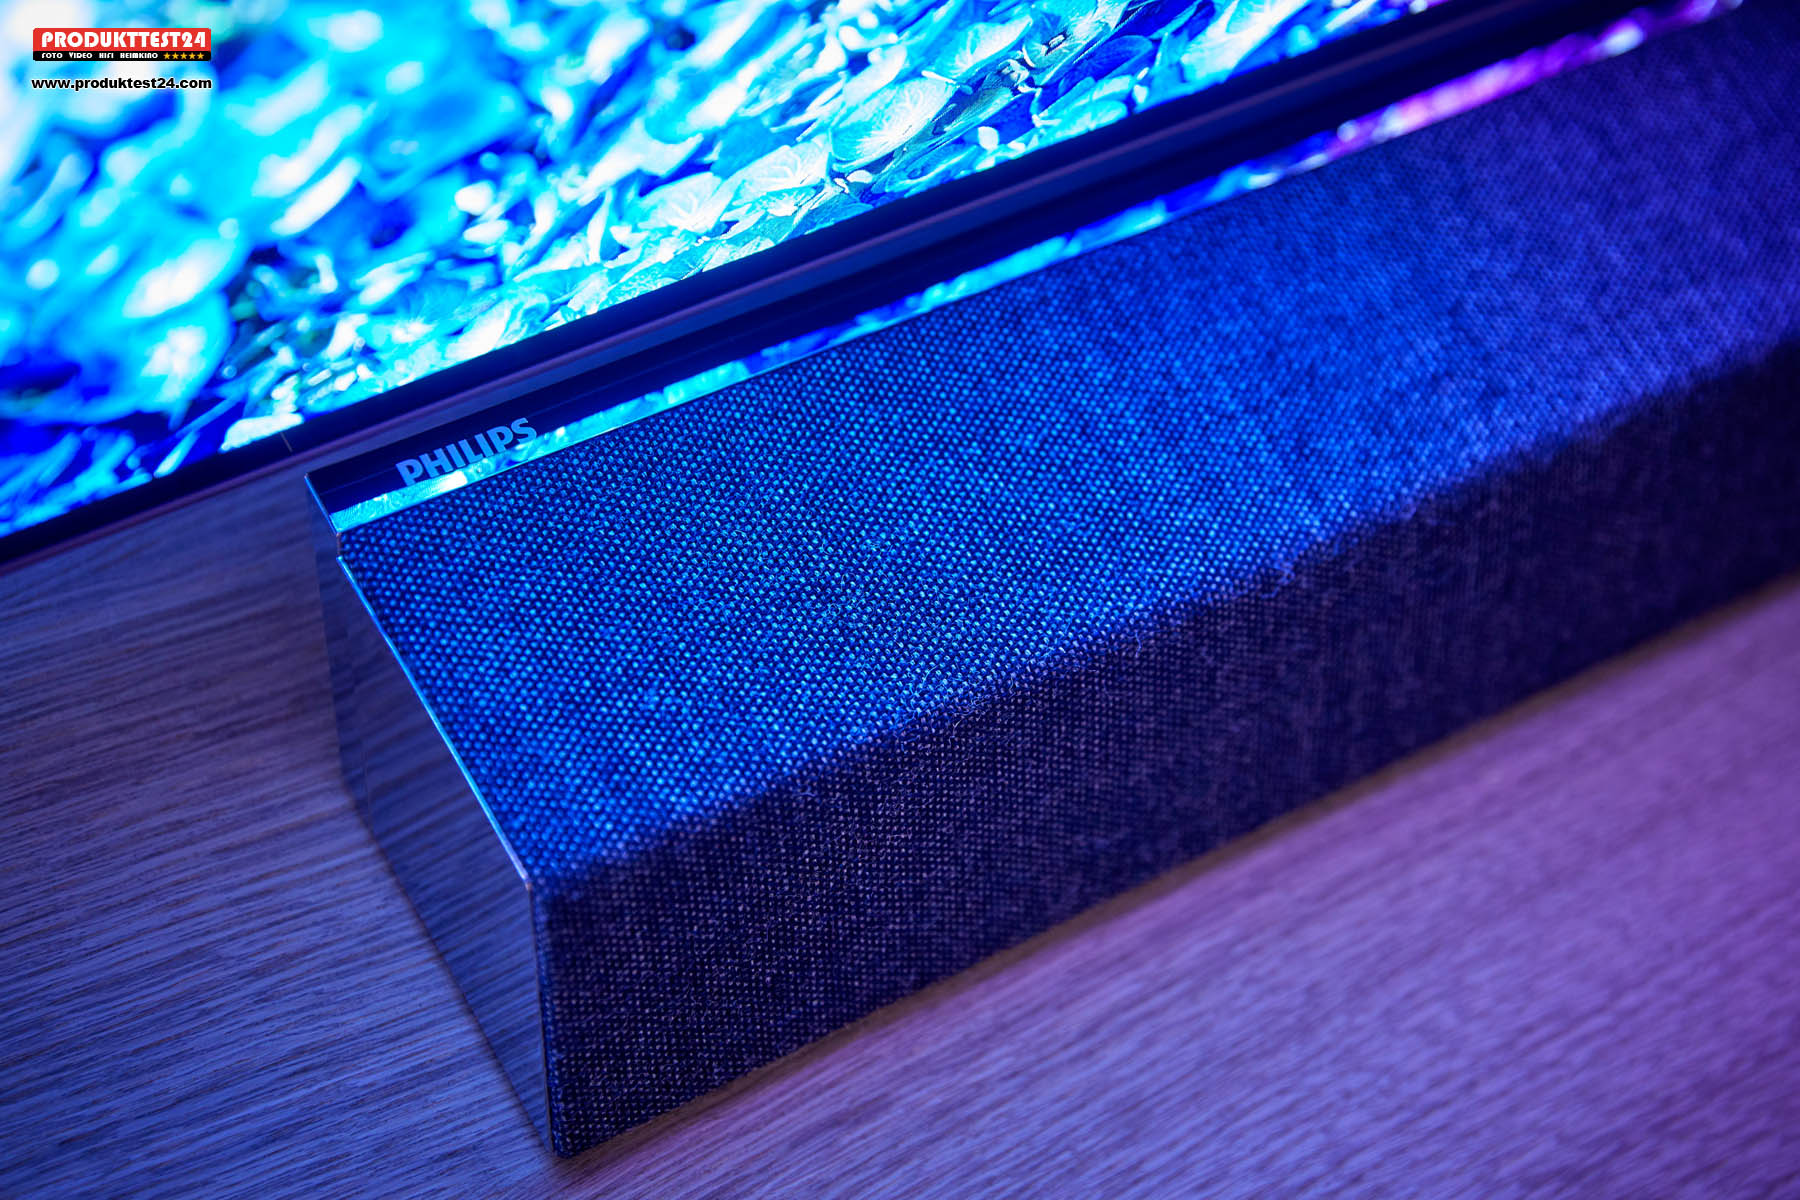 2.1.2 Kanal Soundbar von Bowers & Wilkins